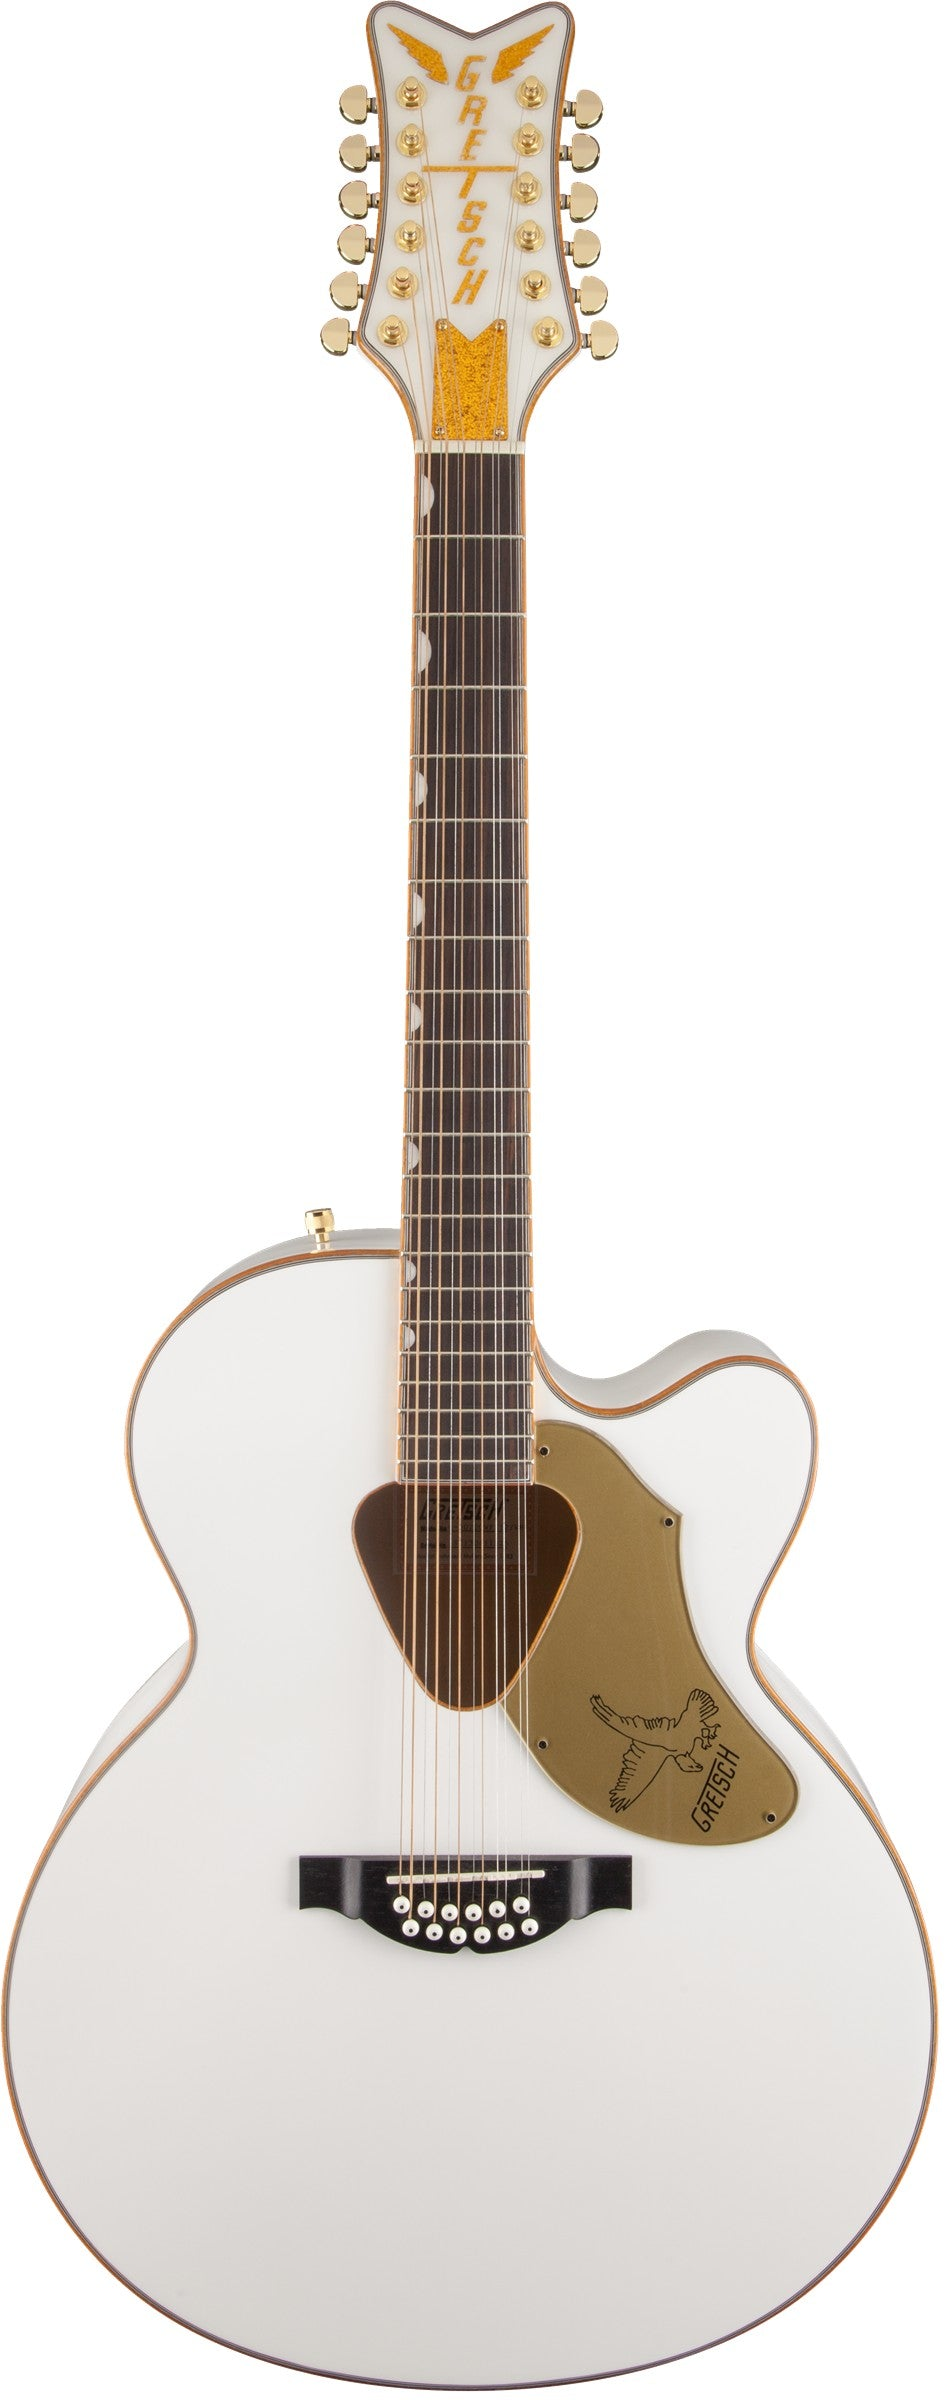 Gretsch Rancher Falcon Jumbo 12-String Acoustic Electric Guitar